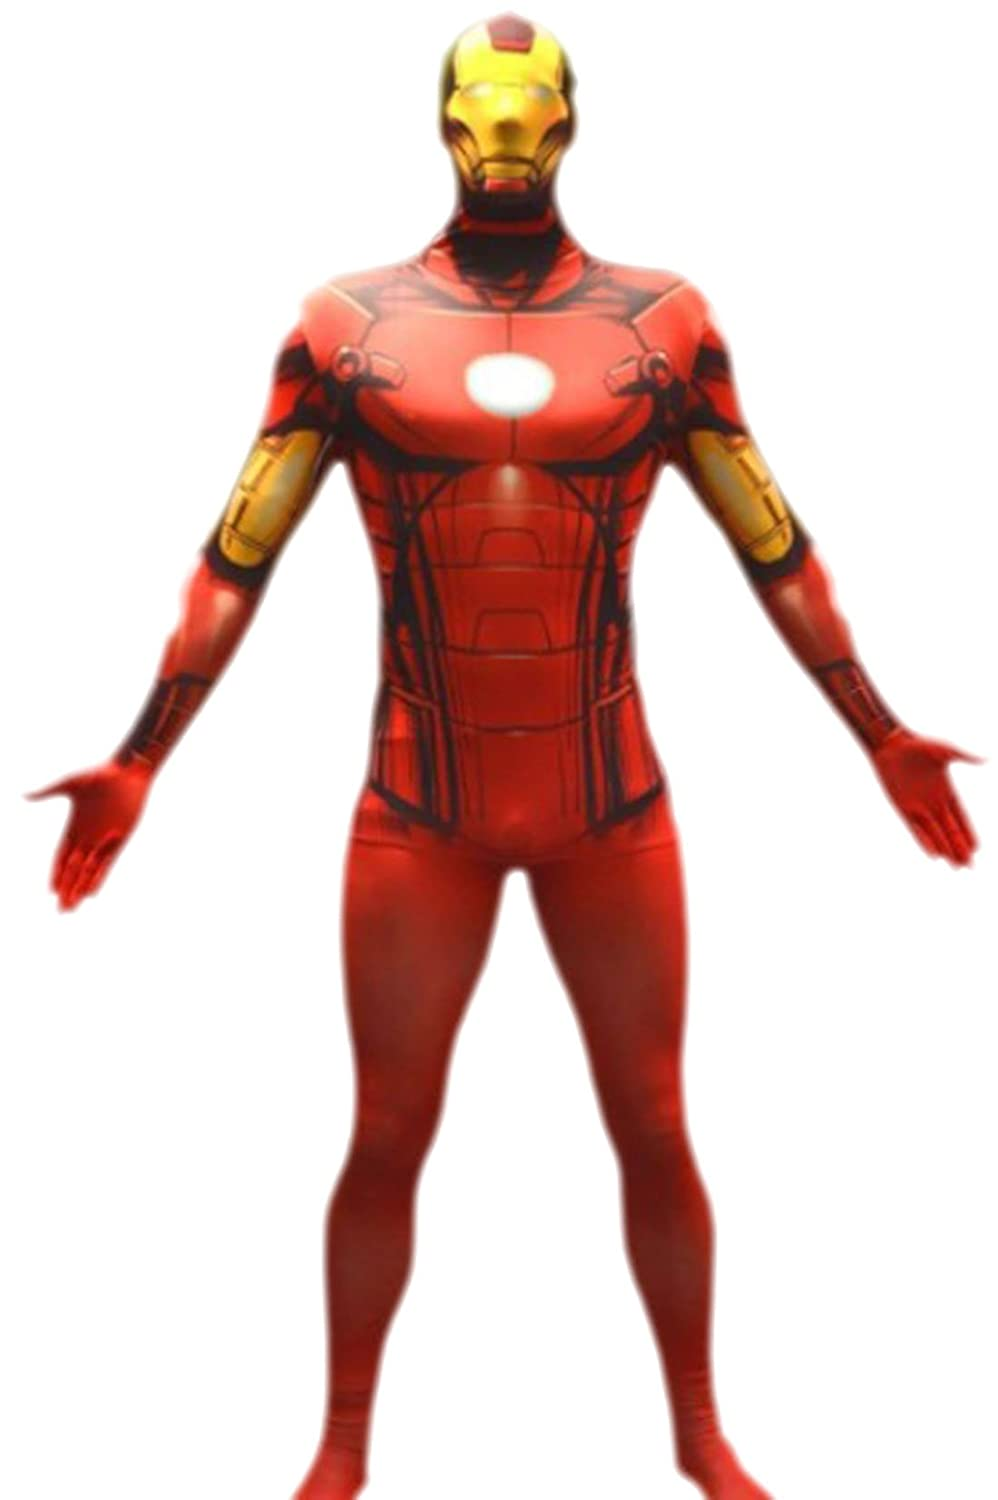 Luxuspiraten - Herren Marvel Iron Man, Comic, Cosplay, Kostüm, XS, Rot